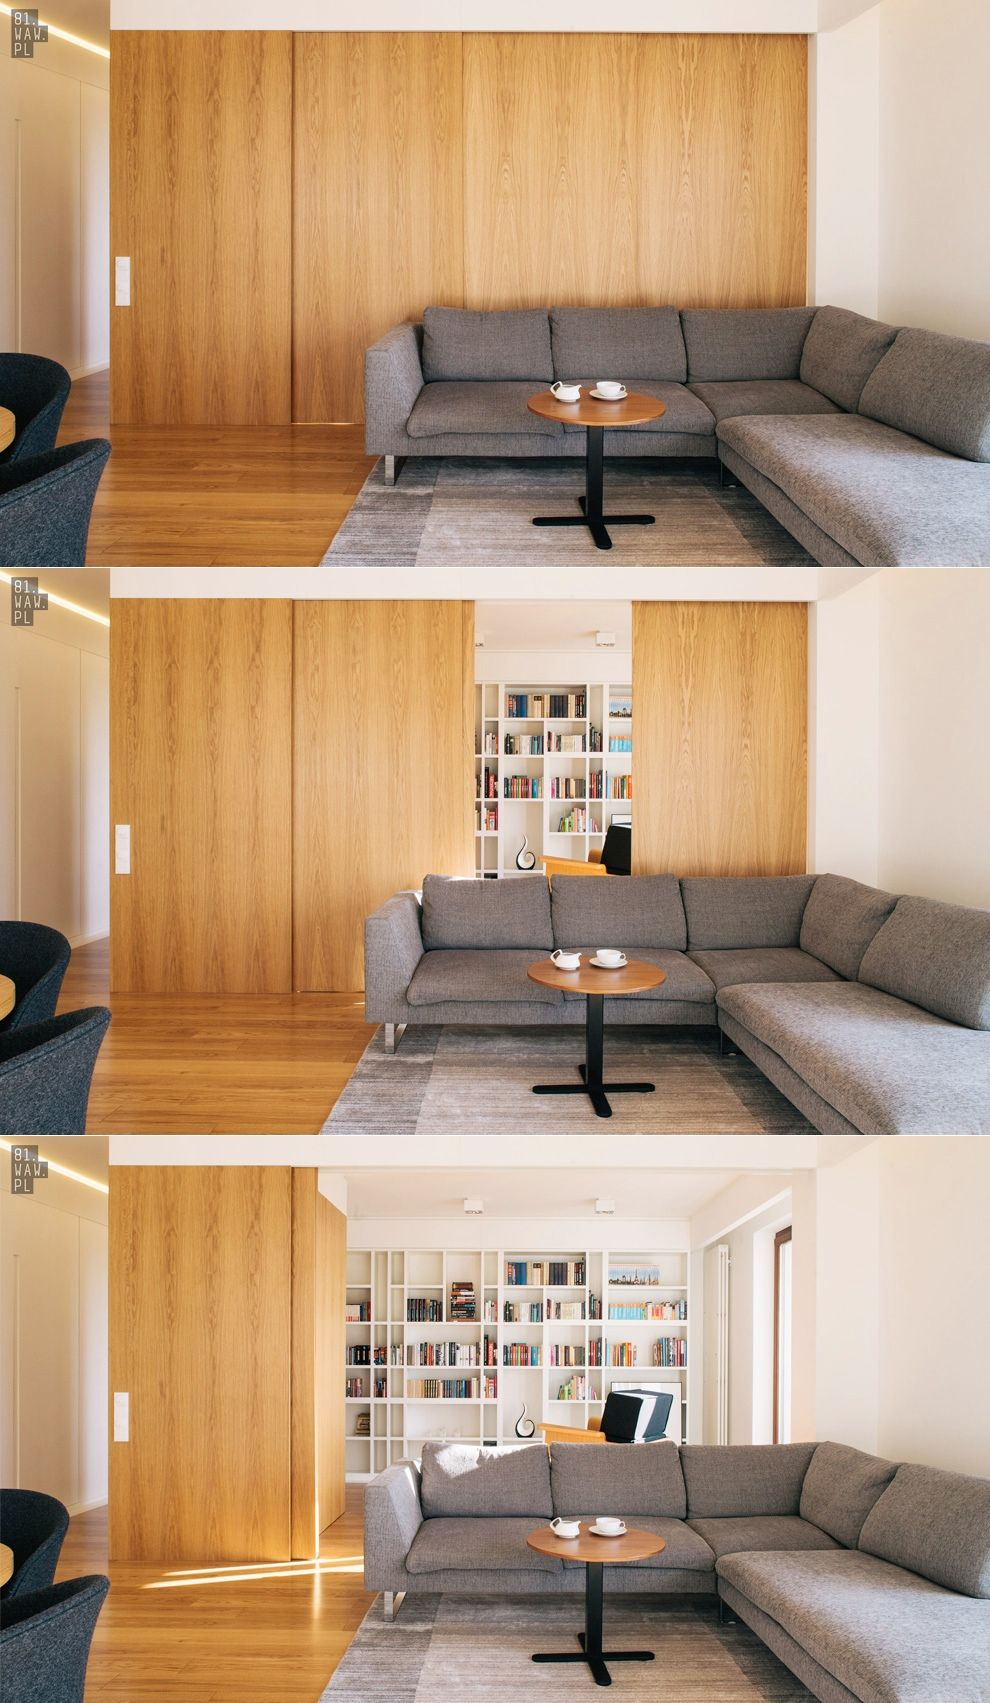 The next home weull look at makes an amazing feature out of a home